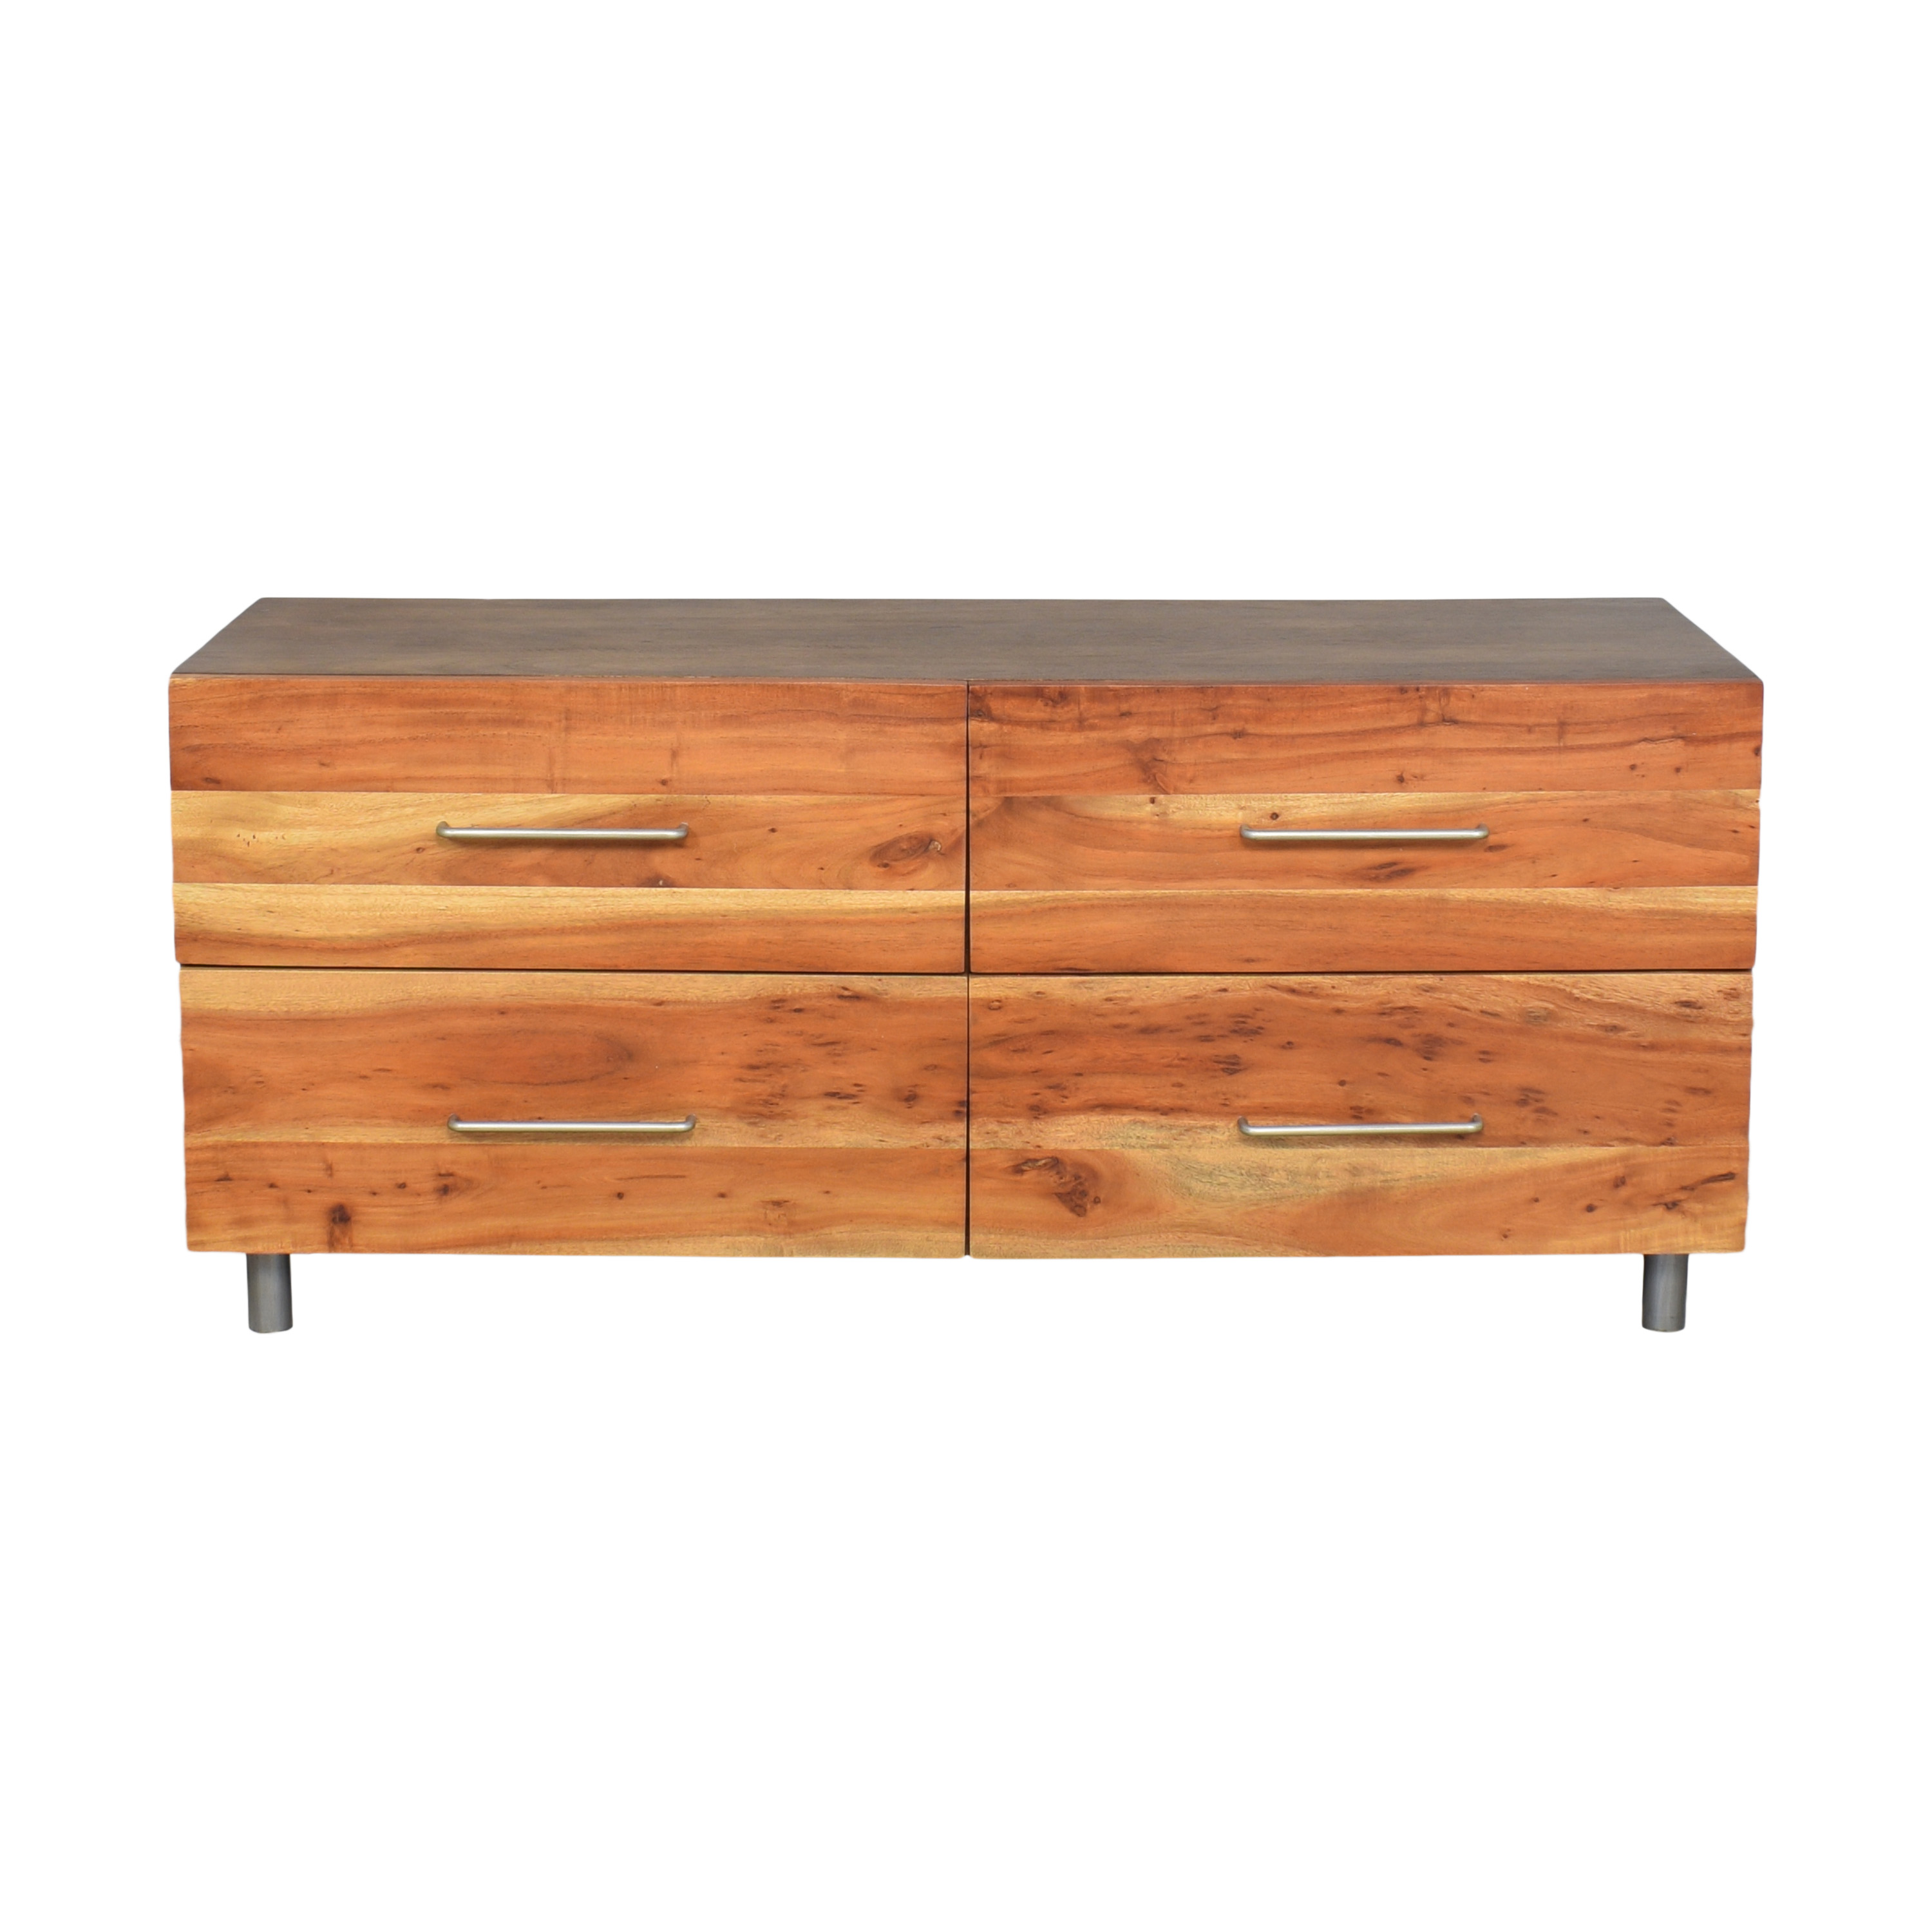 CB2 CB2 Junction Low Four Drawer Dresser for sale